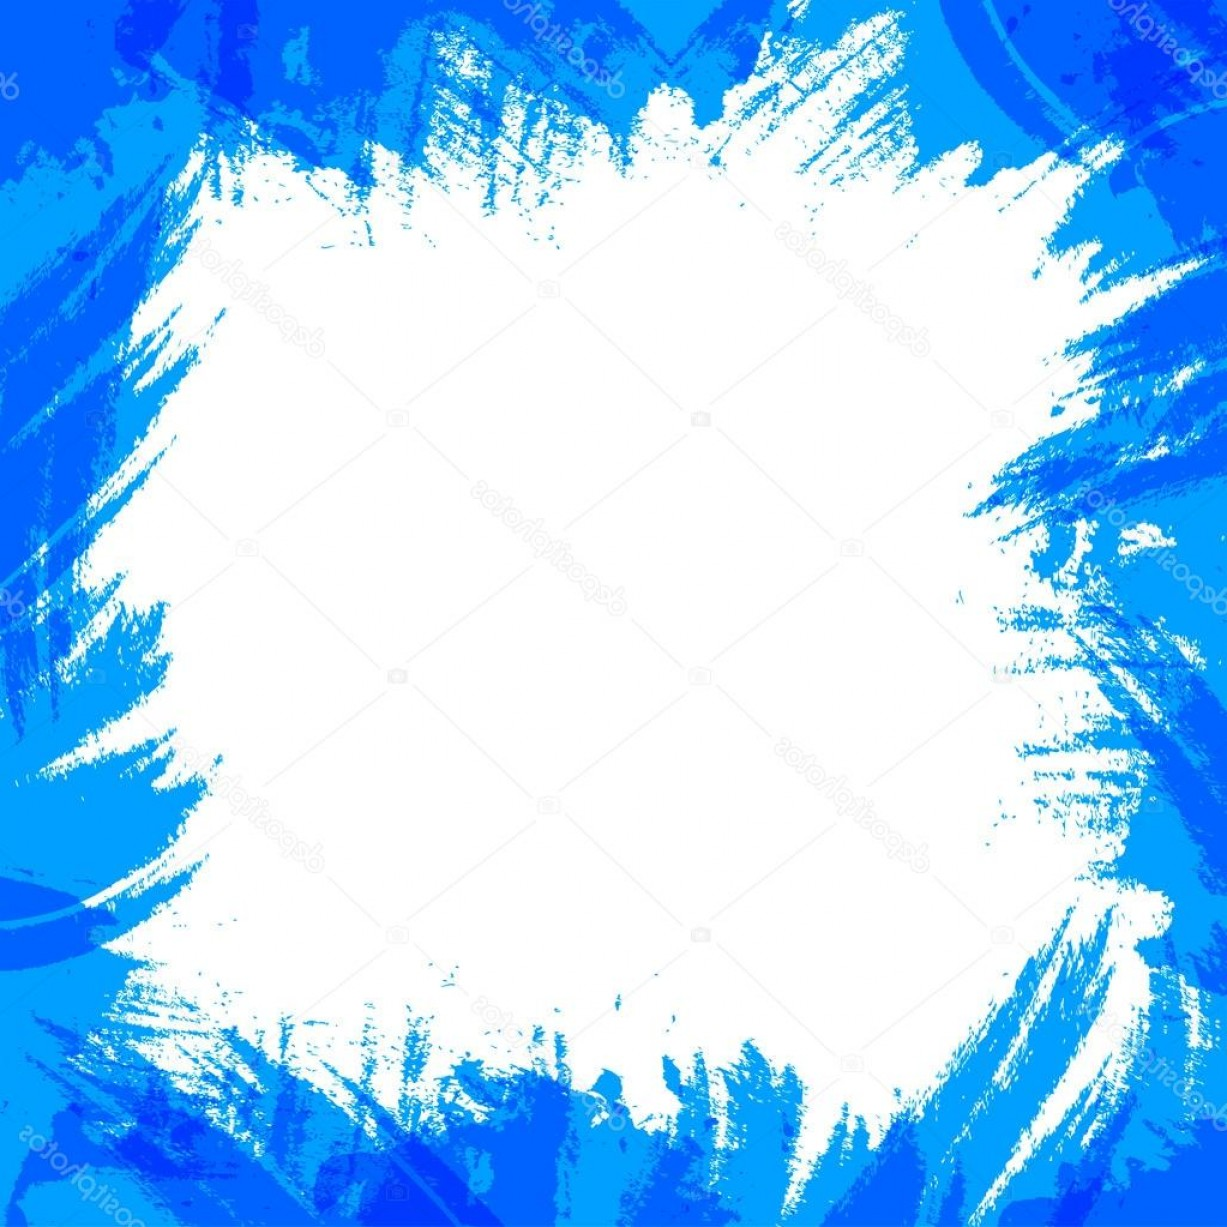 Blue With White Background Vector: Stock Illustration Vector Frame With Dark Blue